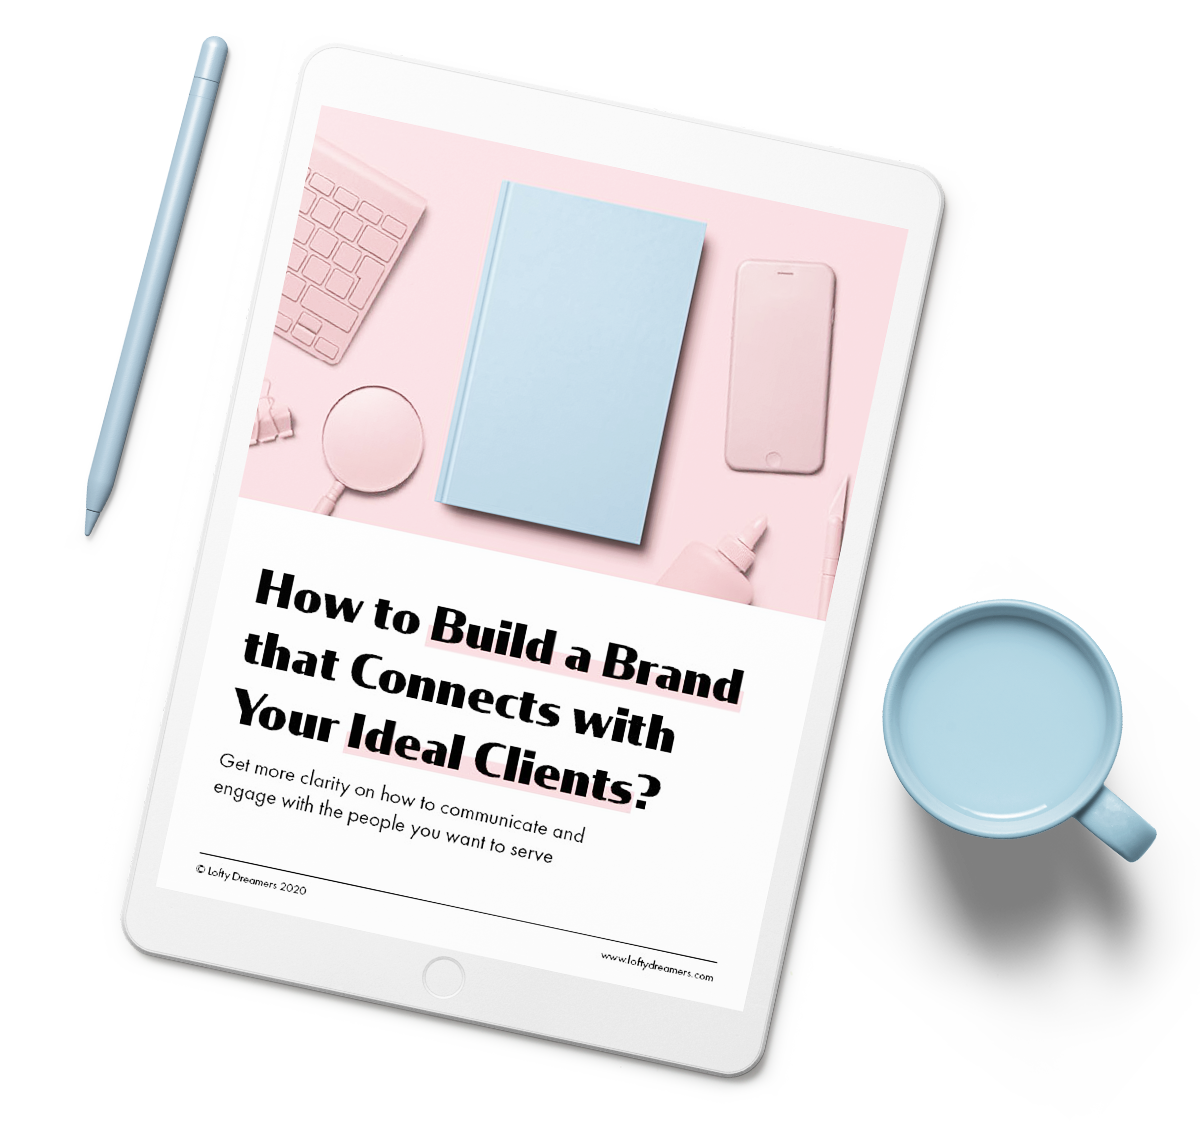 lofty-dreamers-free-guide-book-how-to-connect-with-ideal-clients